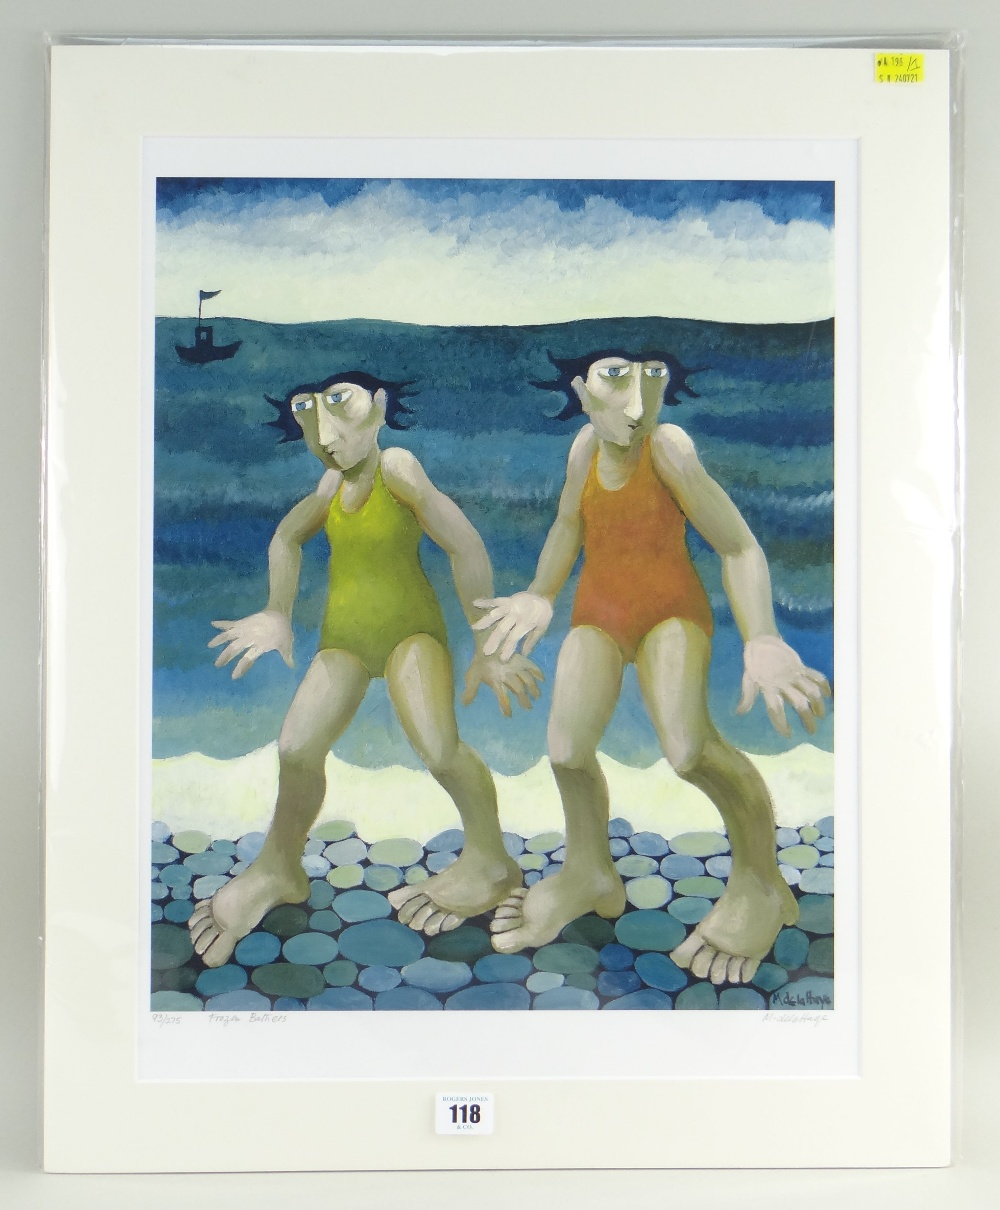 MURIEL DELAHAYE limited edition (93/275) colour print - 'Frozen Bathers', signed in pencil, 45 x - Image 2 of 2